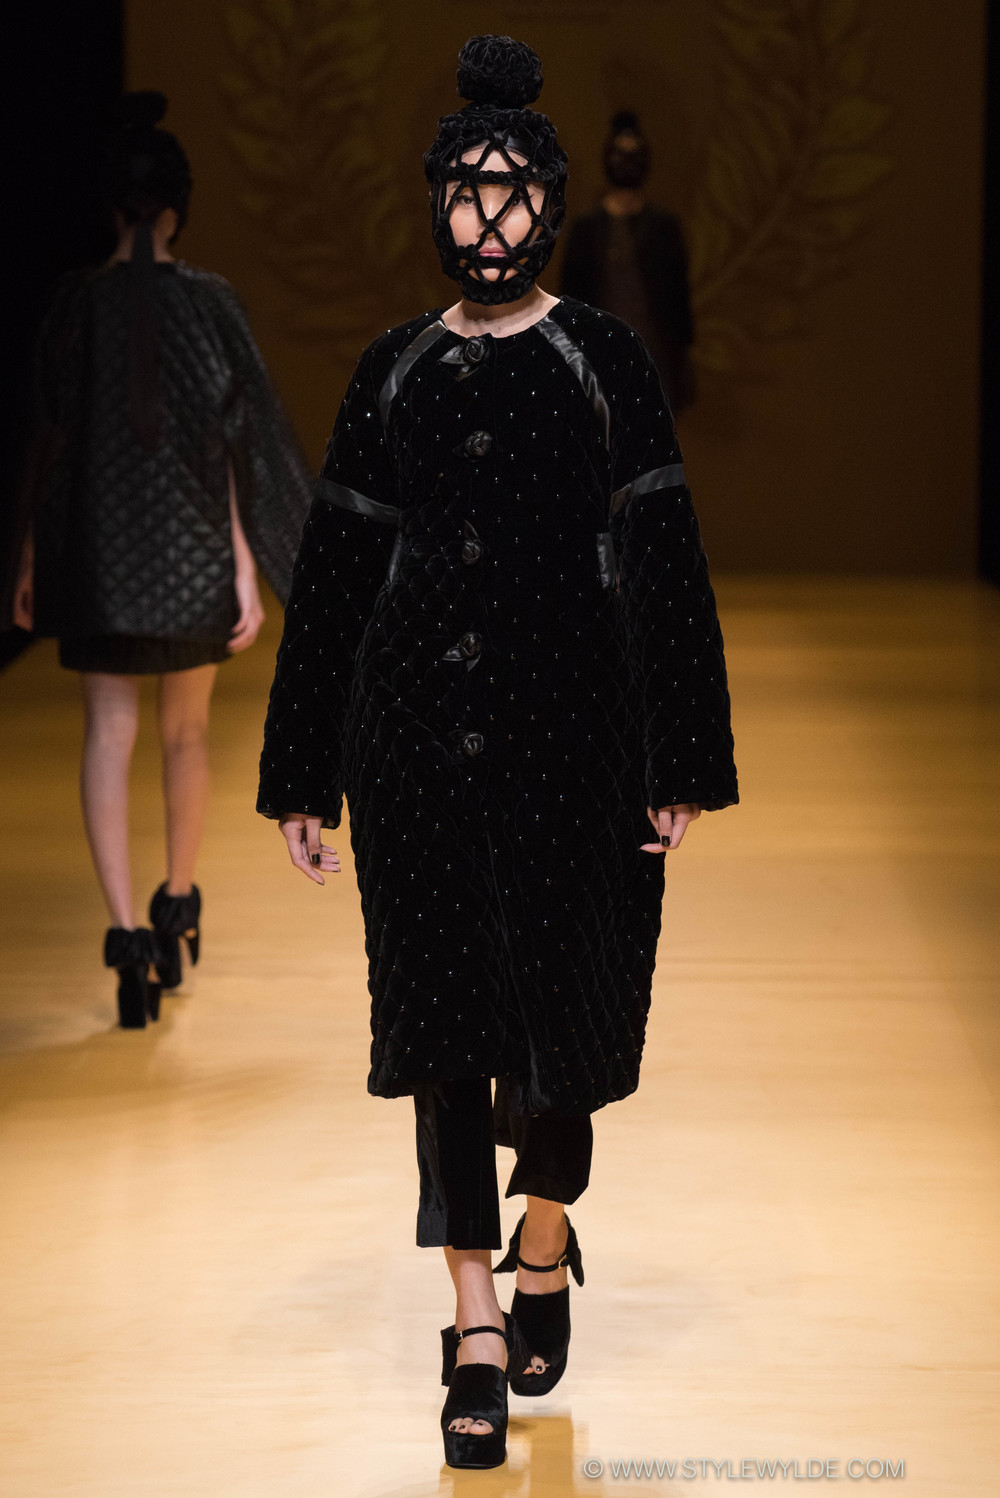 STYLEWYLDE-AsiaFashionMeets-Tokyo_Aw16-30.jpg